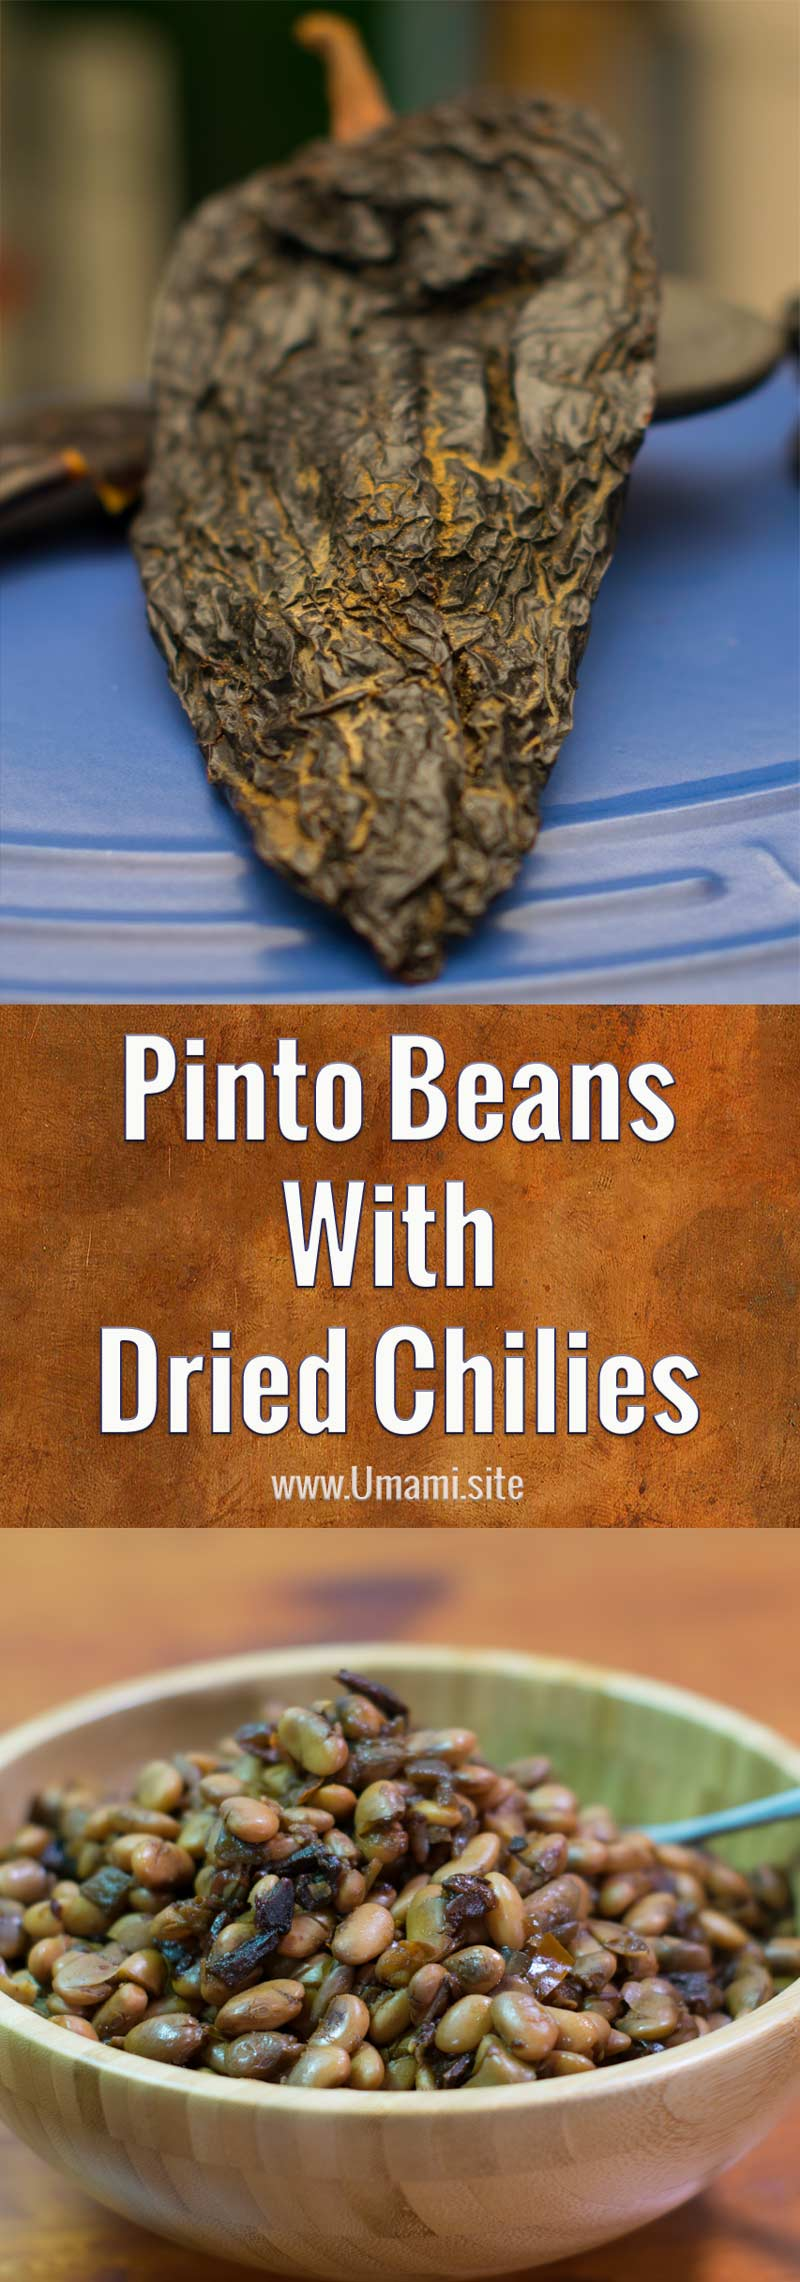 Pinto Beasn With Dried Chilies Pinterest